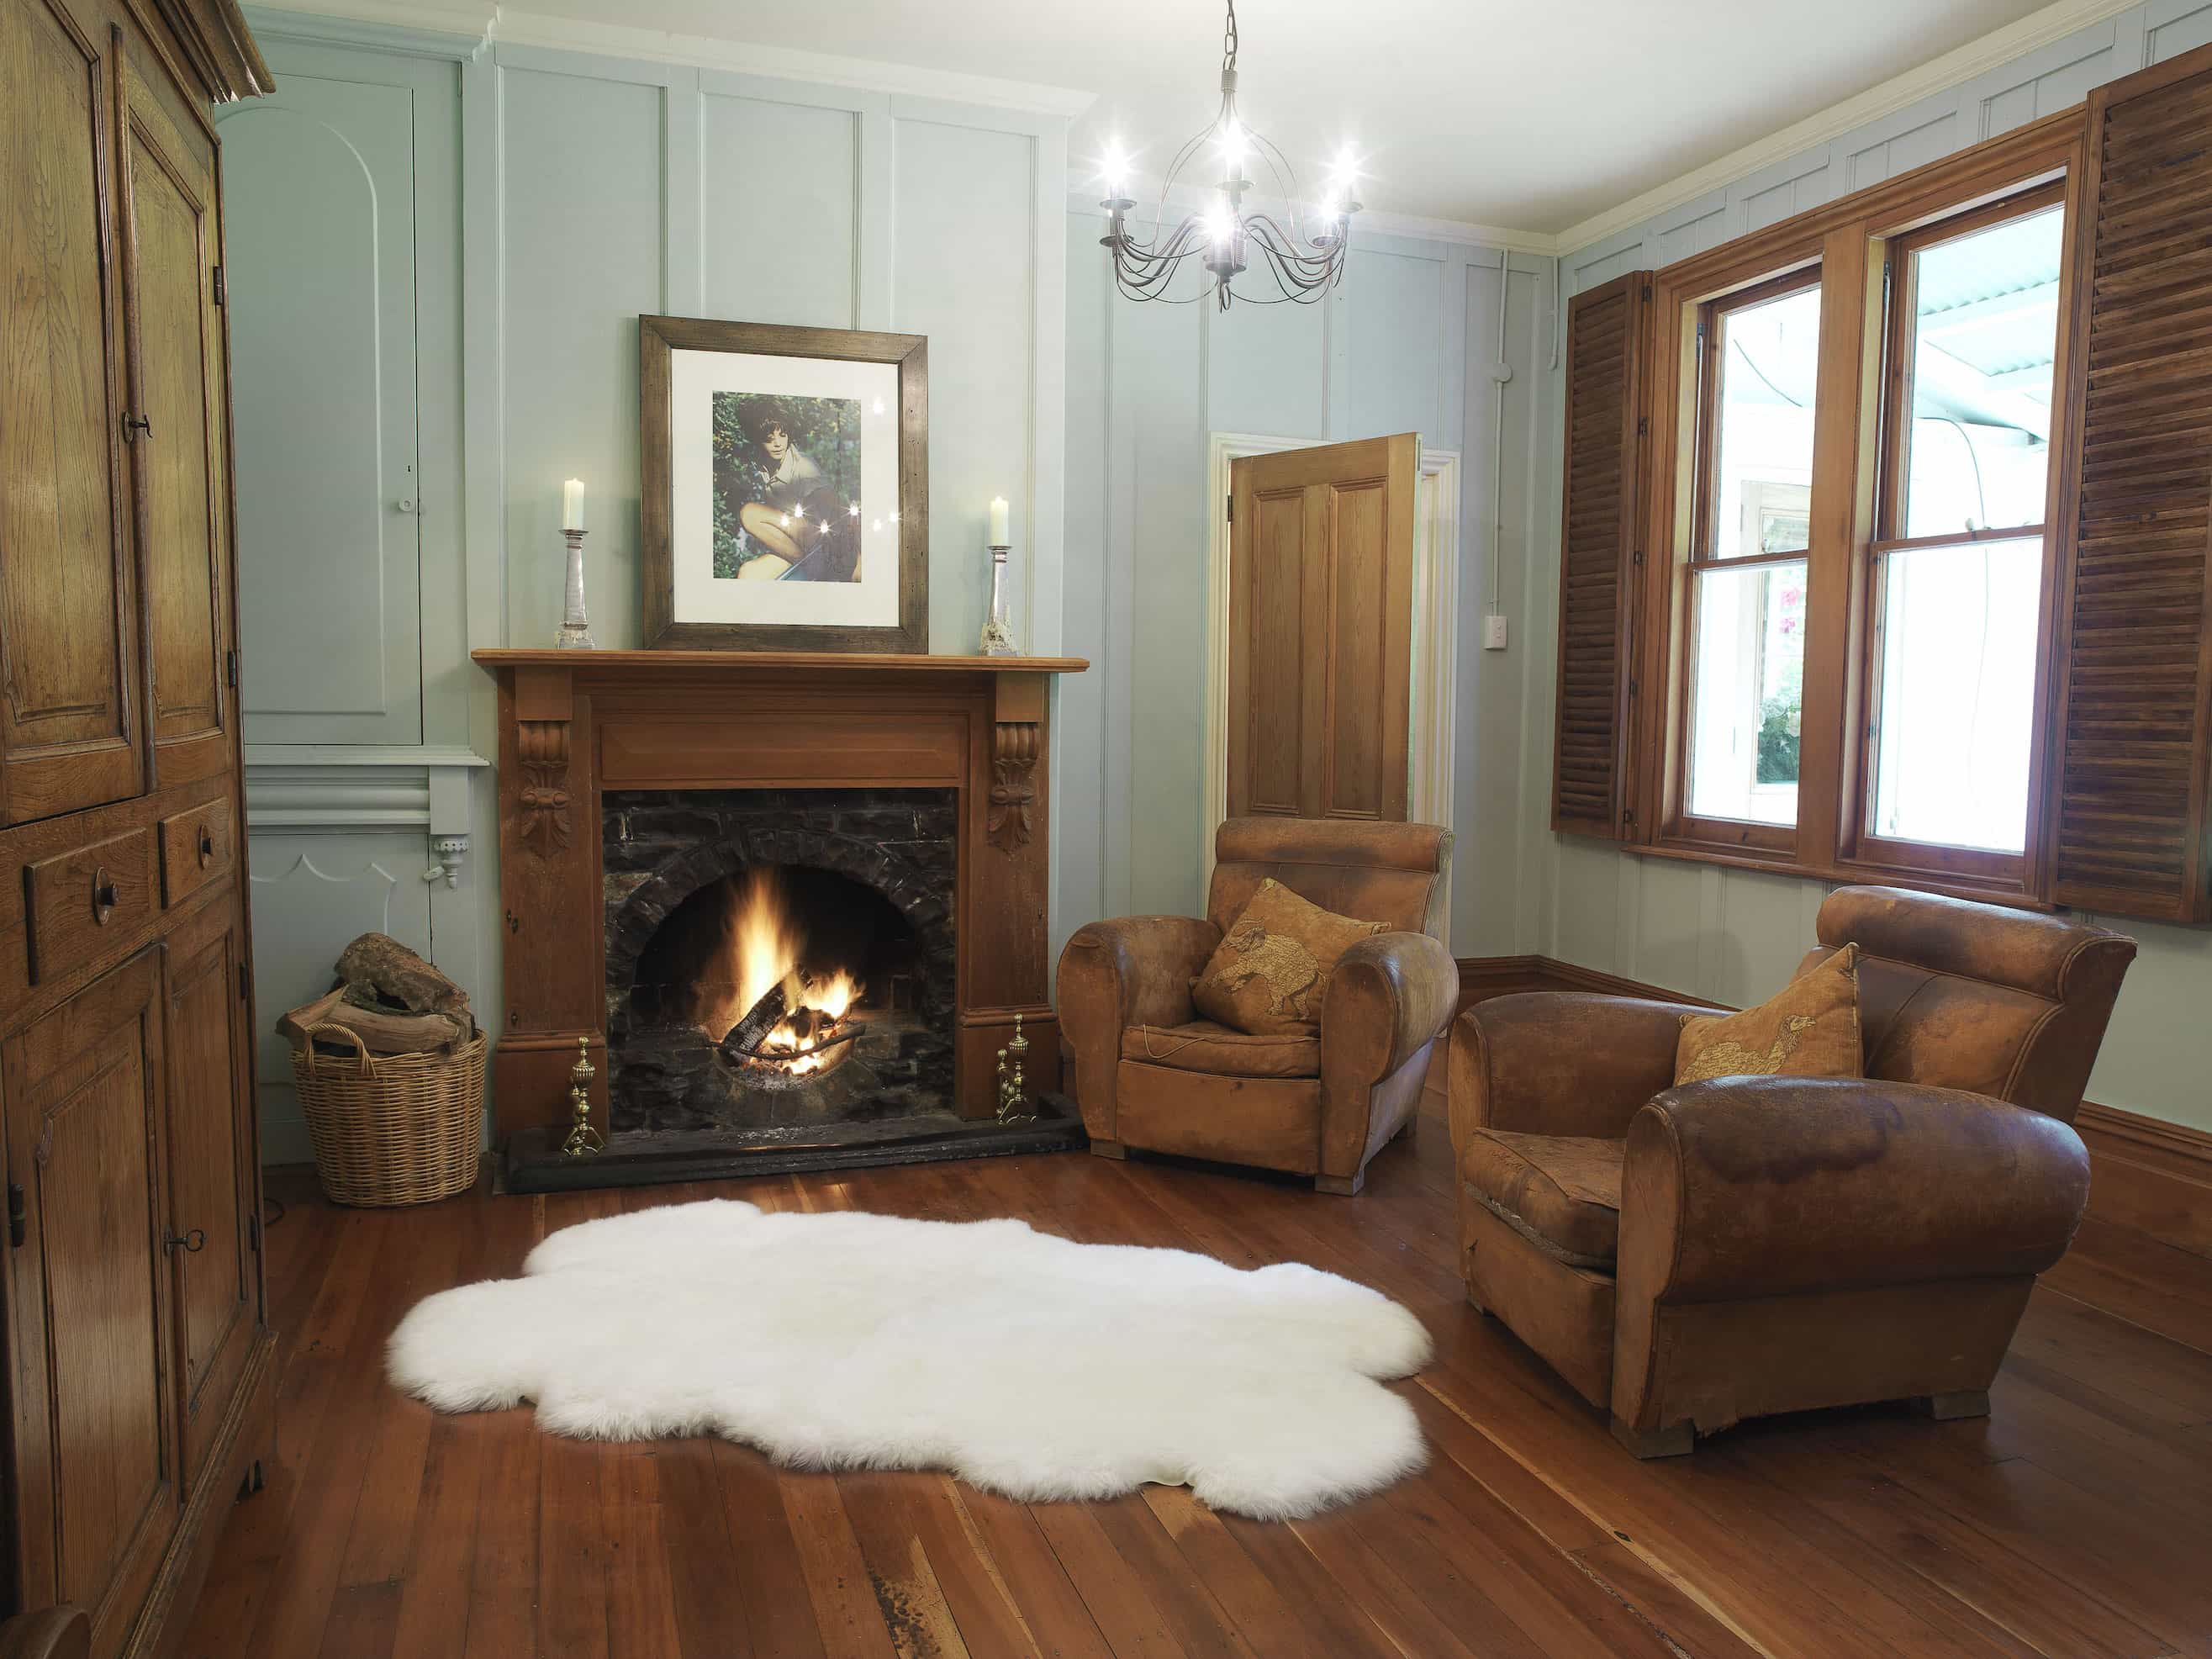 Classic Living Room With Wood Fireplace And Quarto Ivory Longwool Sheepskin Rug (View 7 of 15)